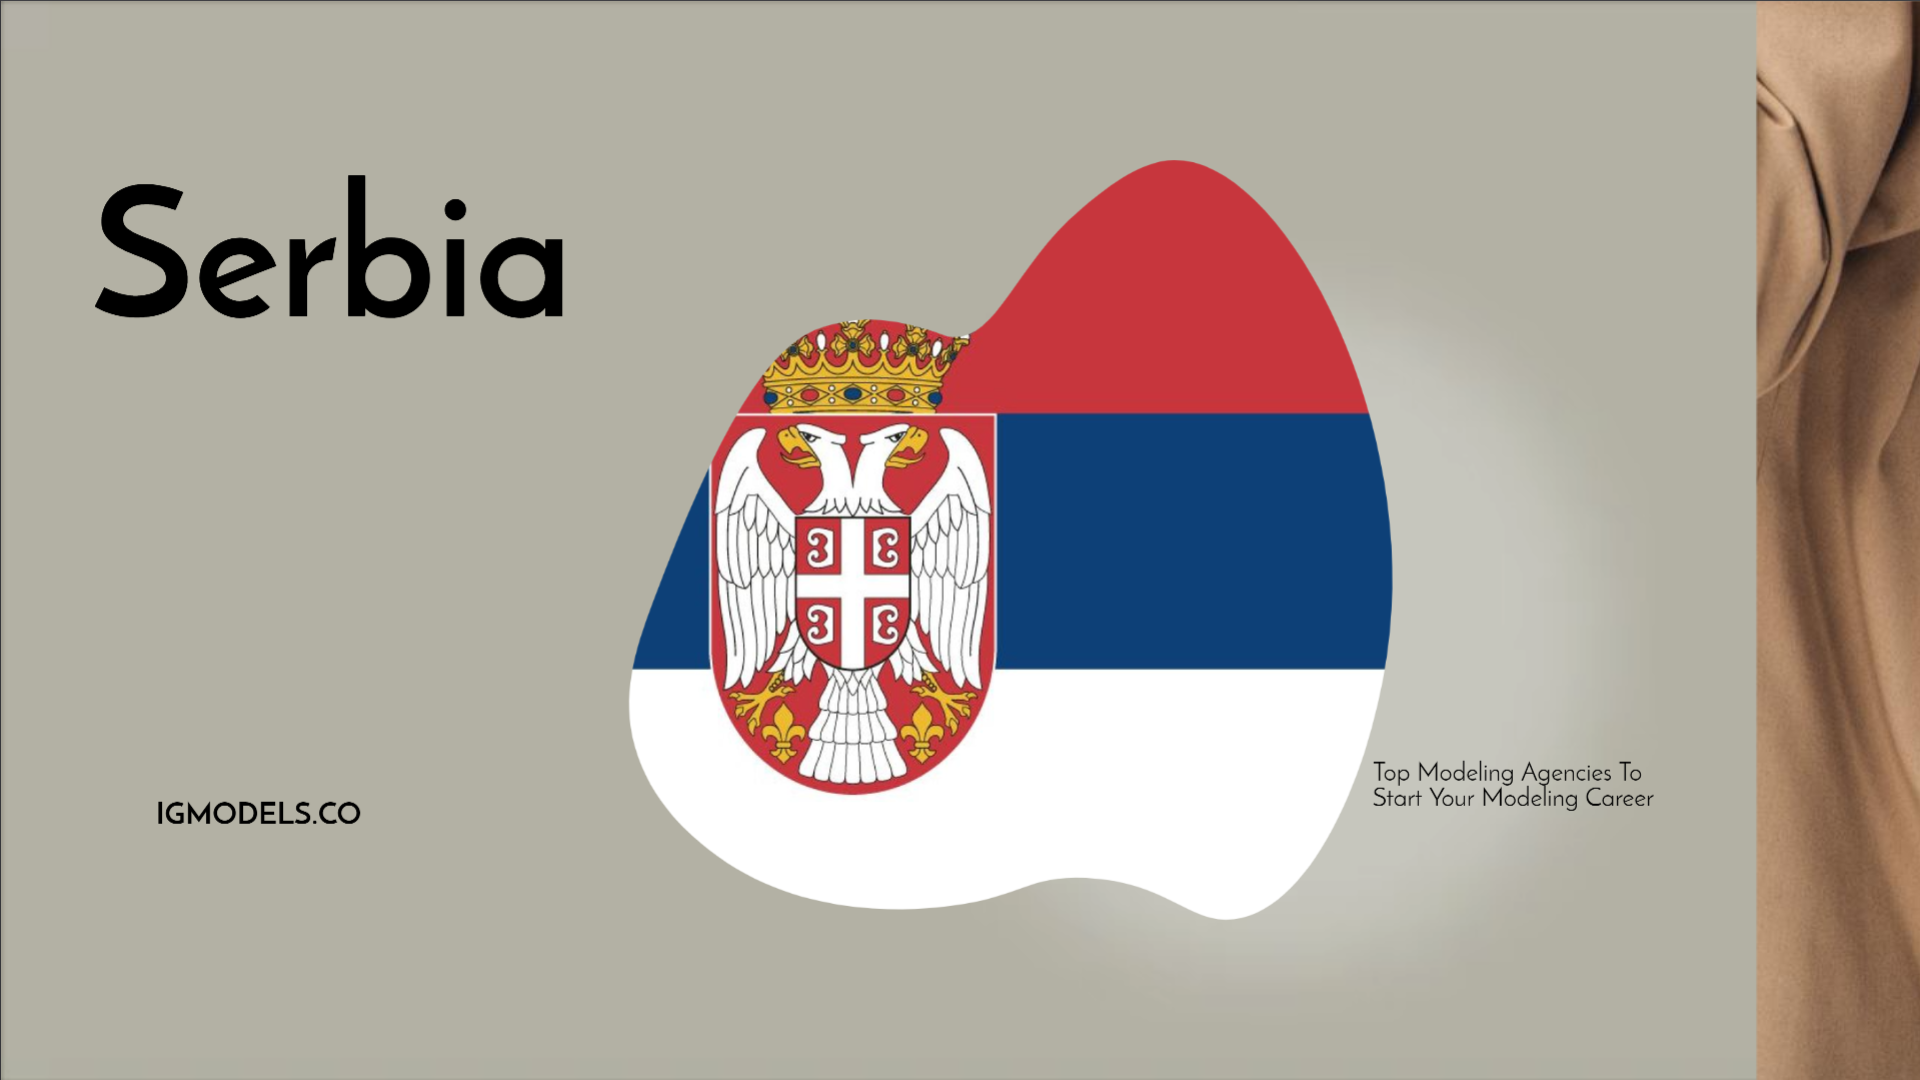 List : Top 35 Modeling Agencies In Serbia To Start Your Modeling Career In 2021